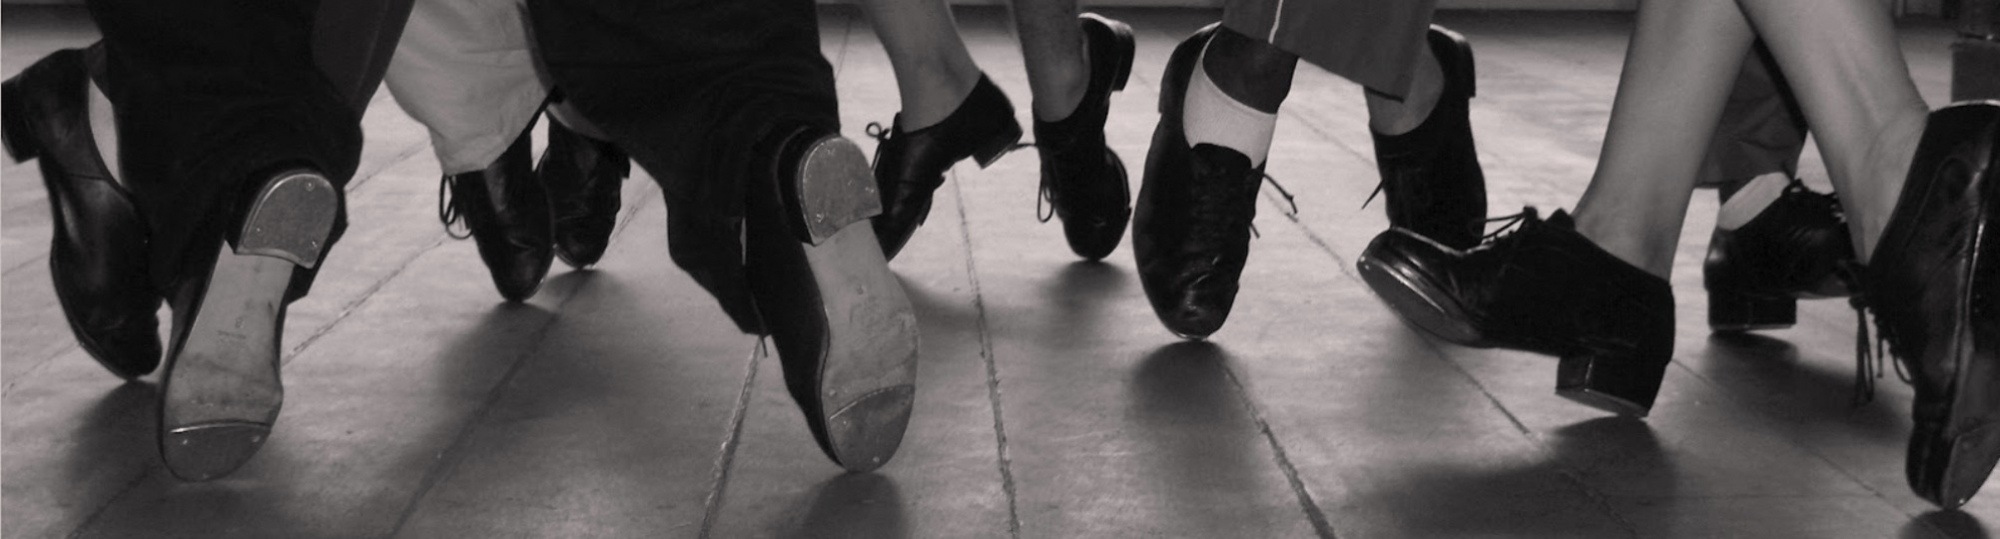 Tap dancers in the middle of routine, photo is a view of only their tap shoes